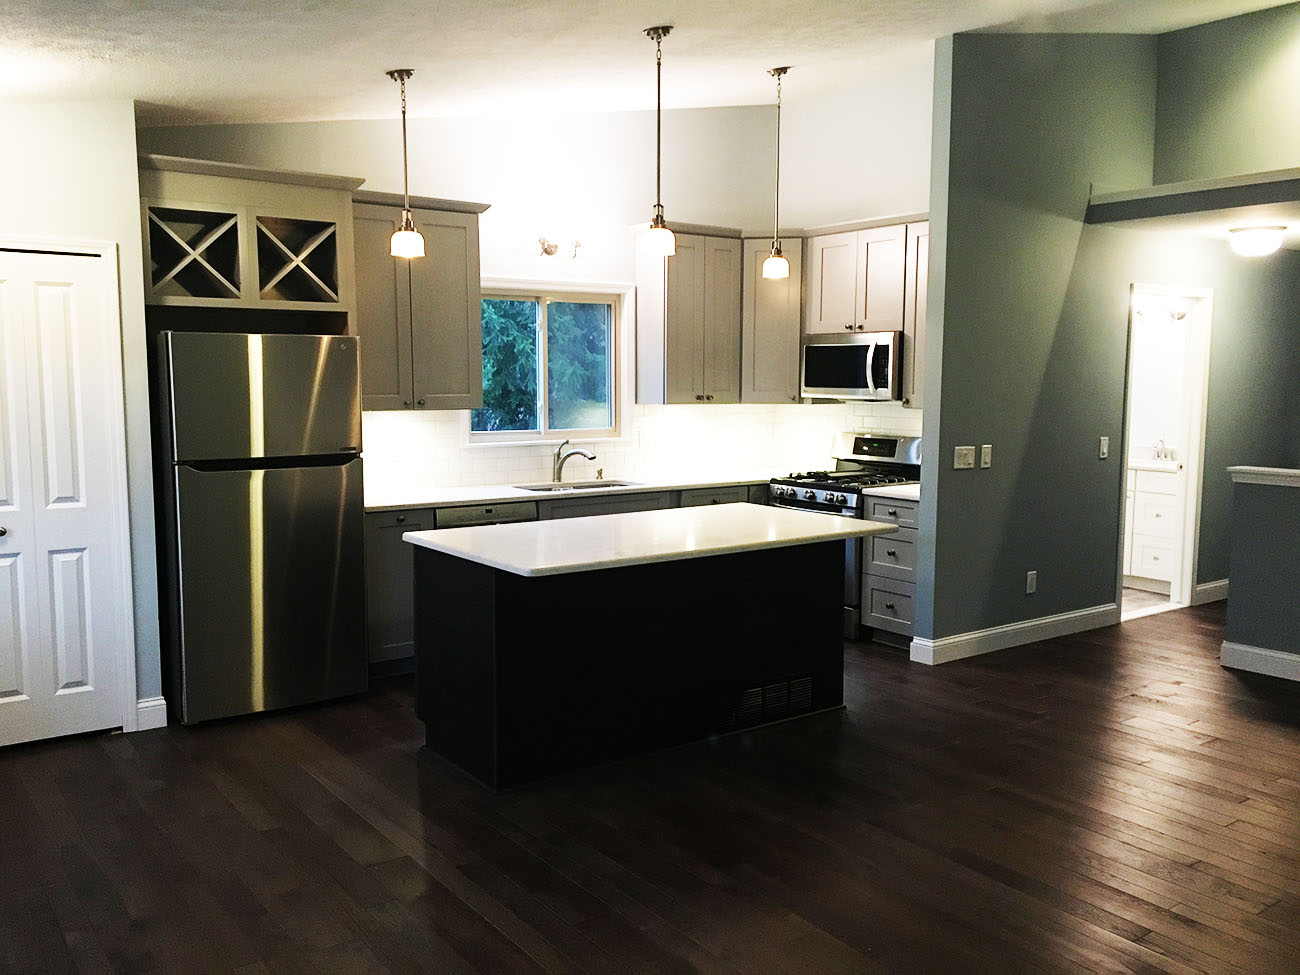 Dark Hard Wood Kitchen Flooring with Renovated Cabinets and Kitchen Island